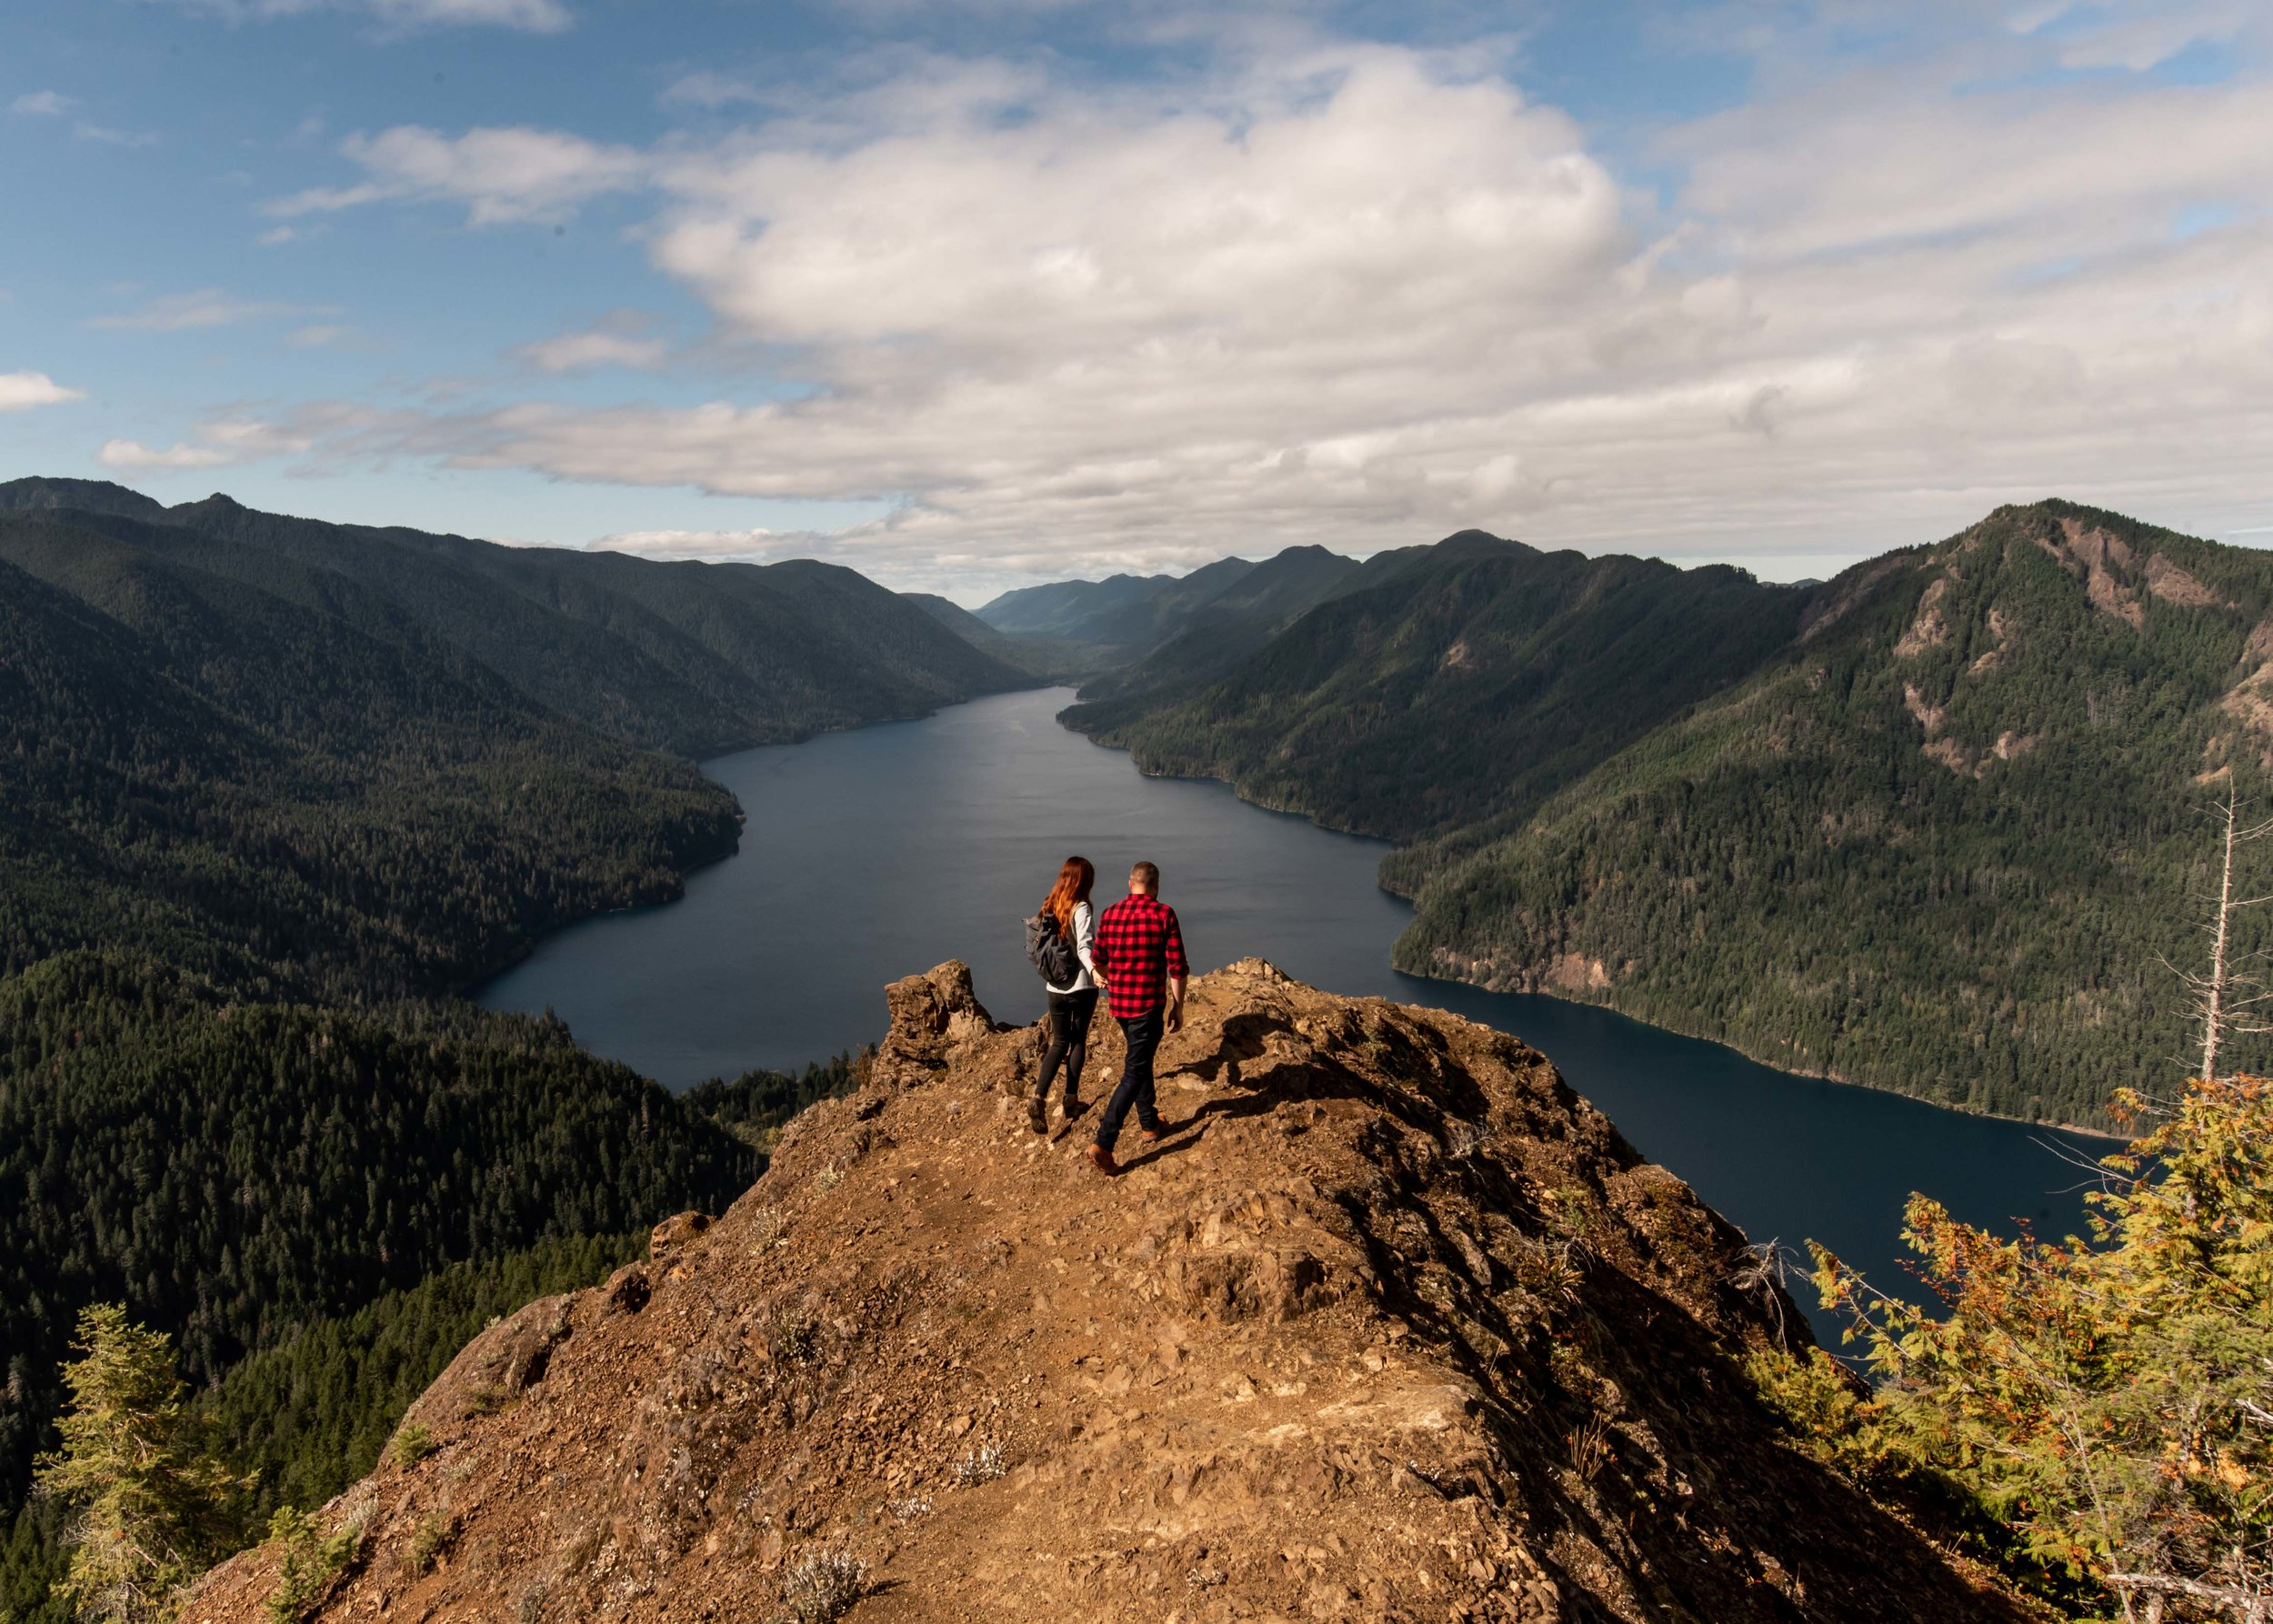 To me, this was our hardest hike. That's Lake Crescent below.